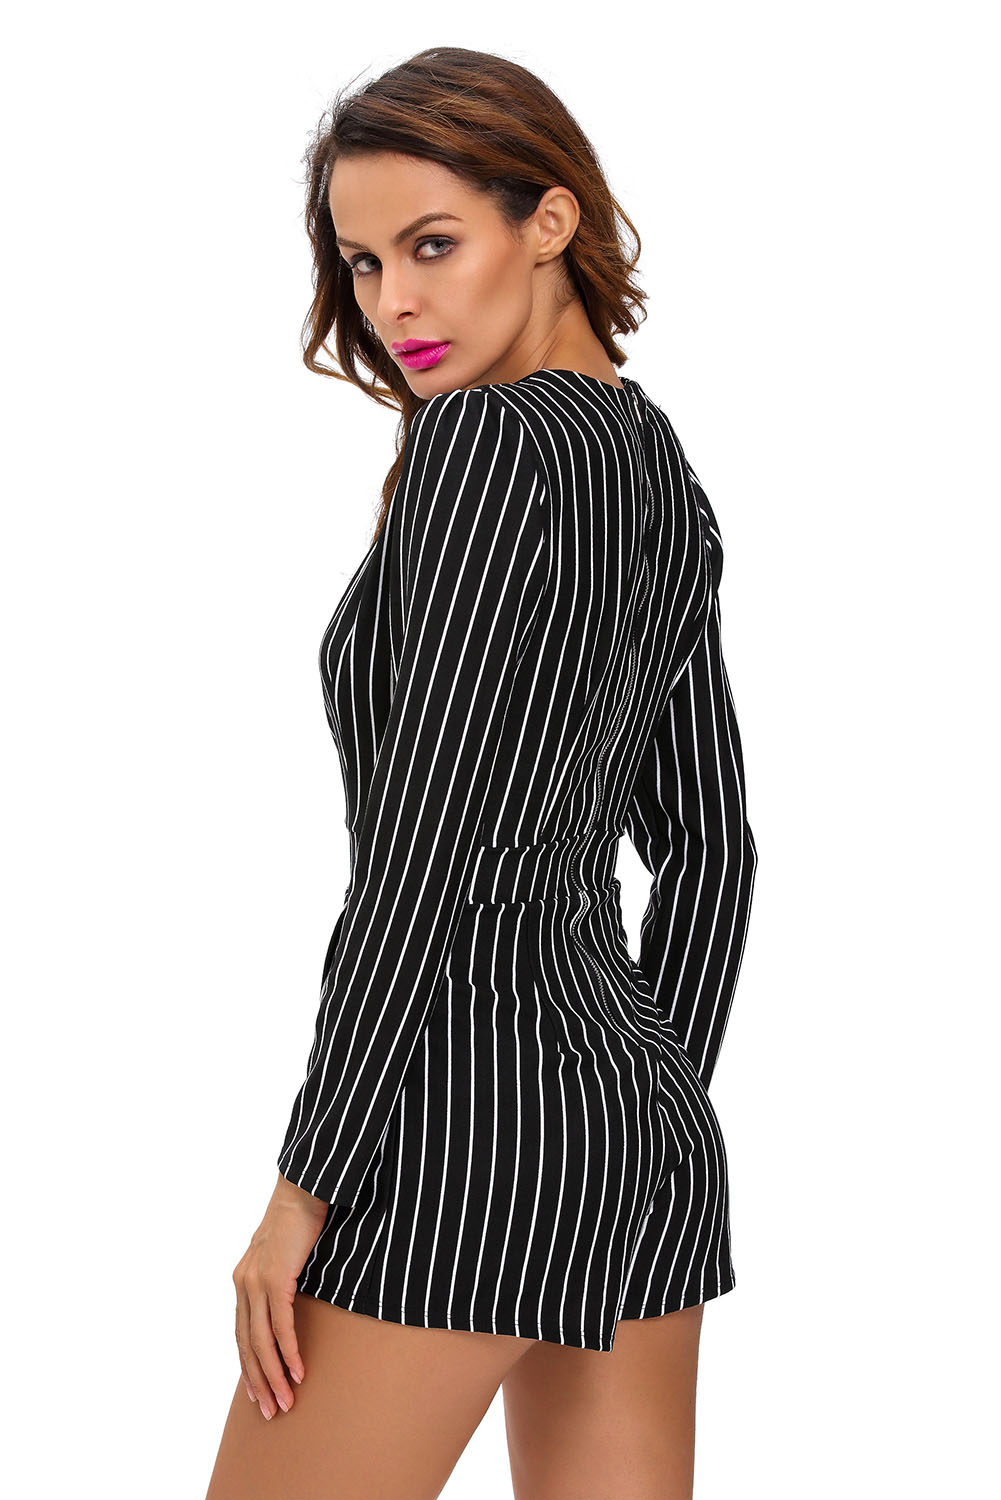 Black dress romper - Women Black Stripes Plunging V Neck Romper Dress